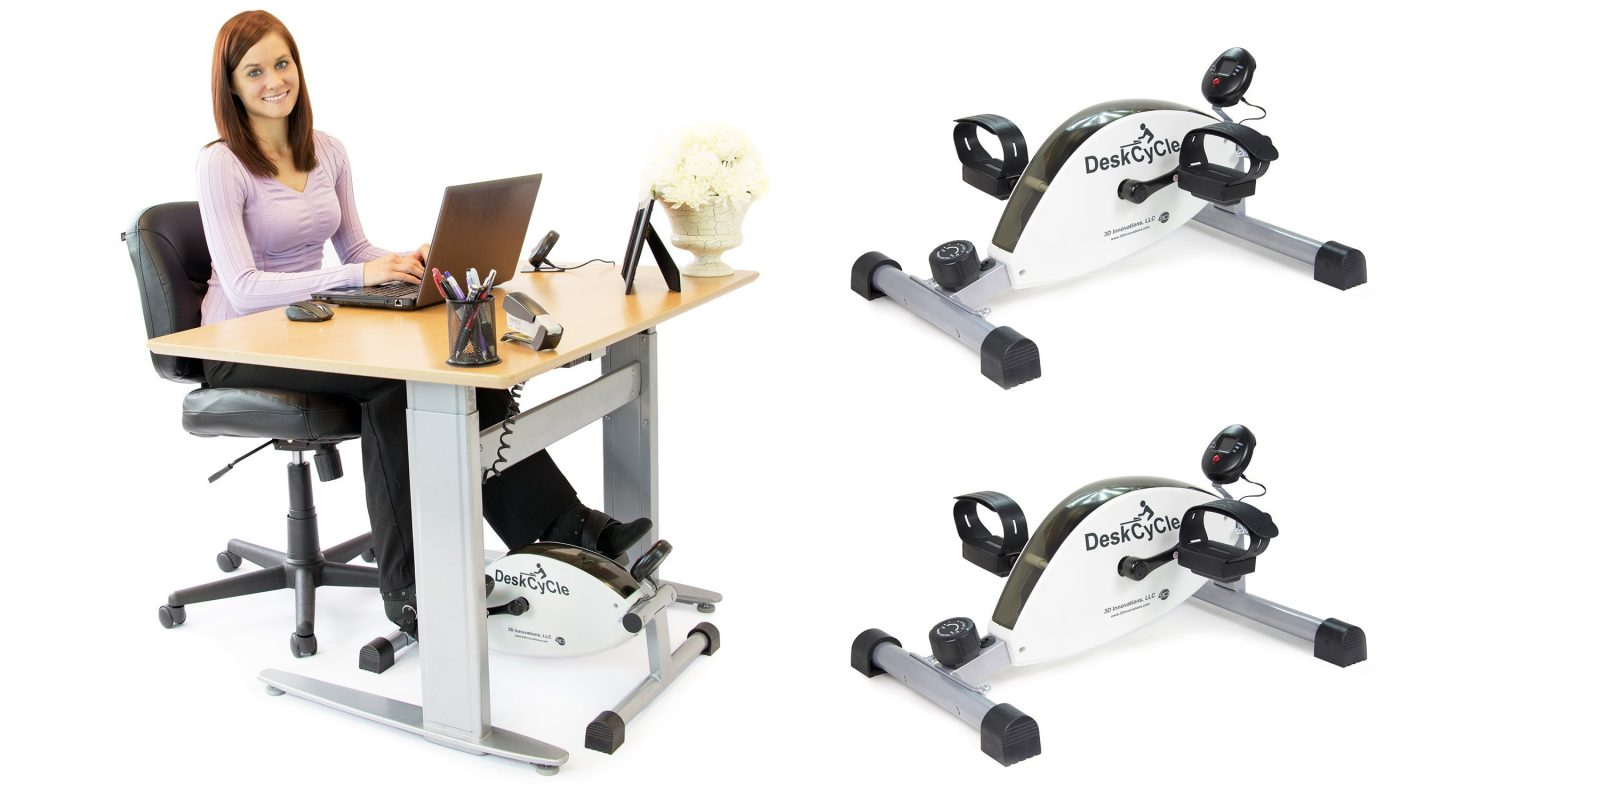 Deskcycle Under Desk Exercise Bike Now A Best Ever 119 Shipped Today Only Reg 159